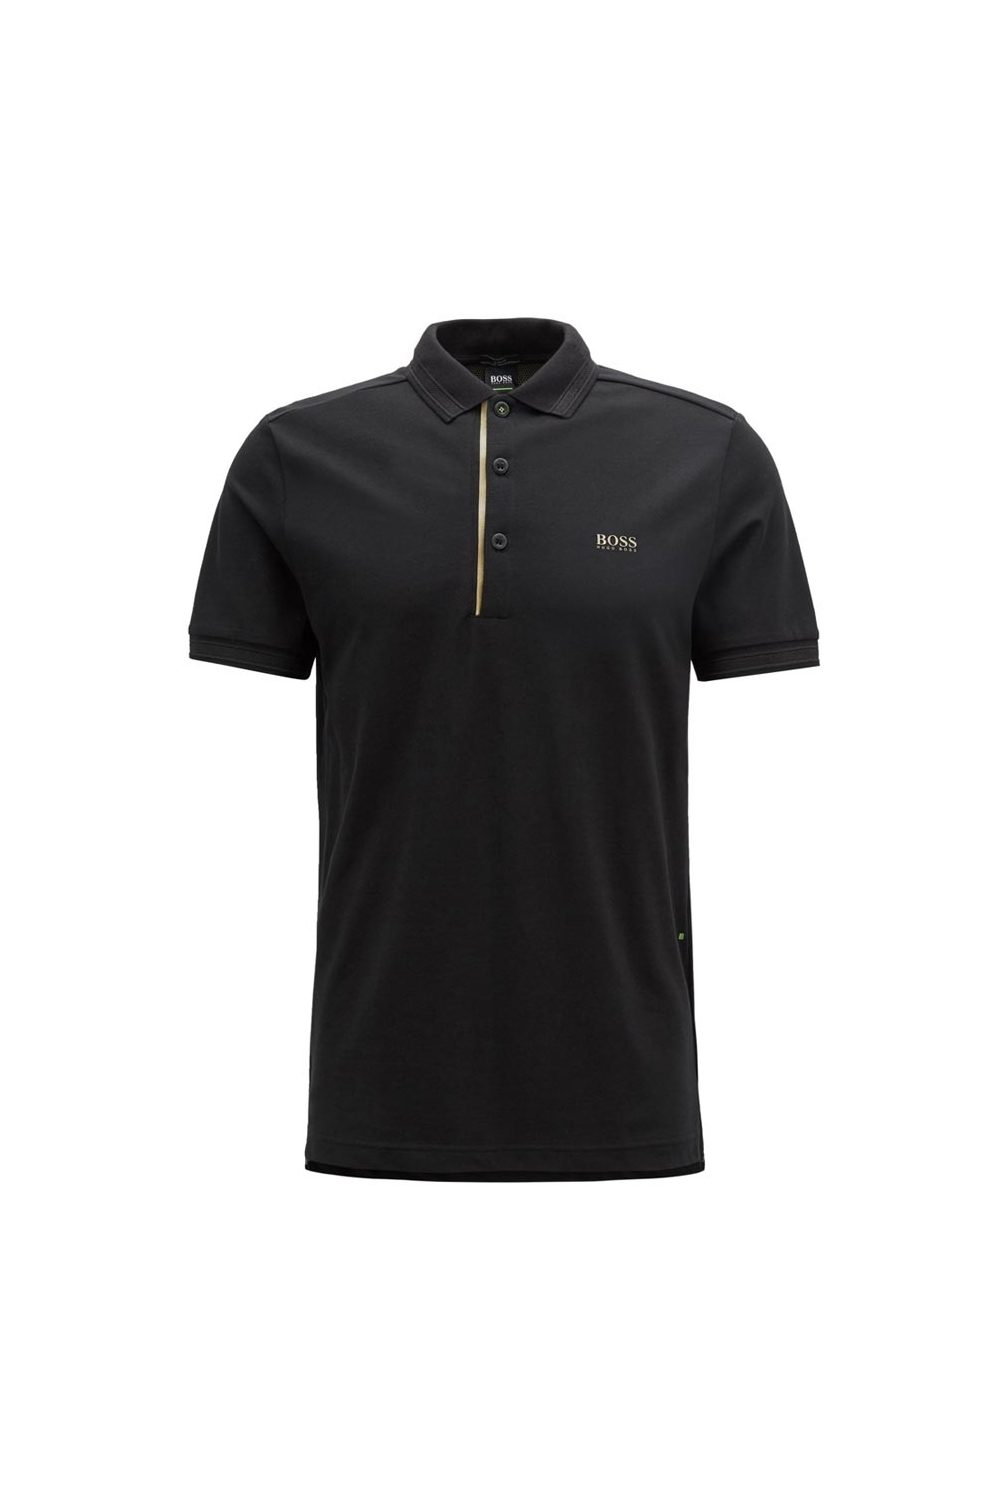 78e32036 Hugo Boss Green Paddy Polo Shirt in Black & Gold 50395931/001